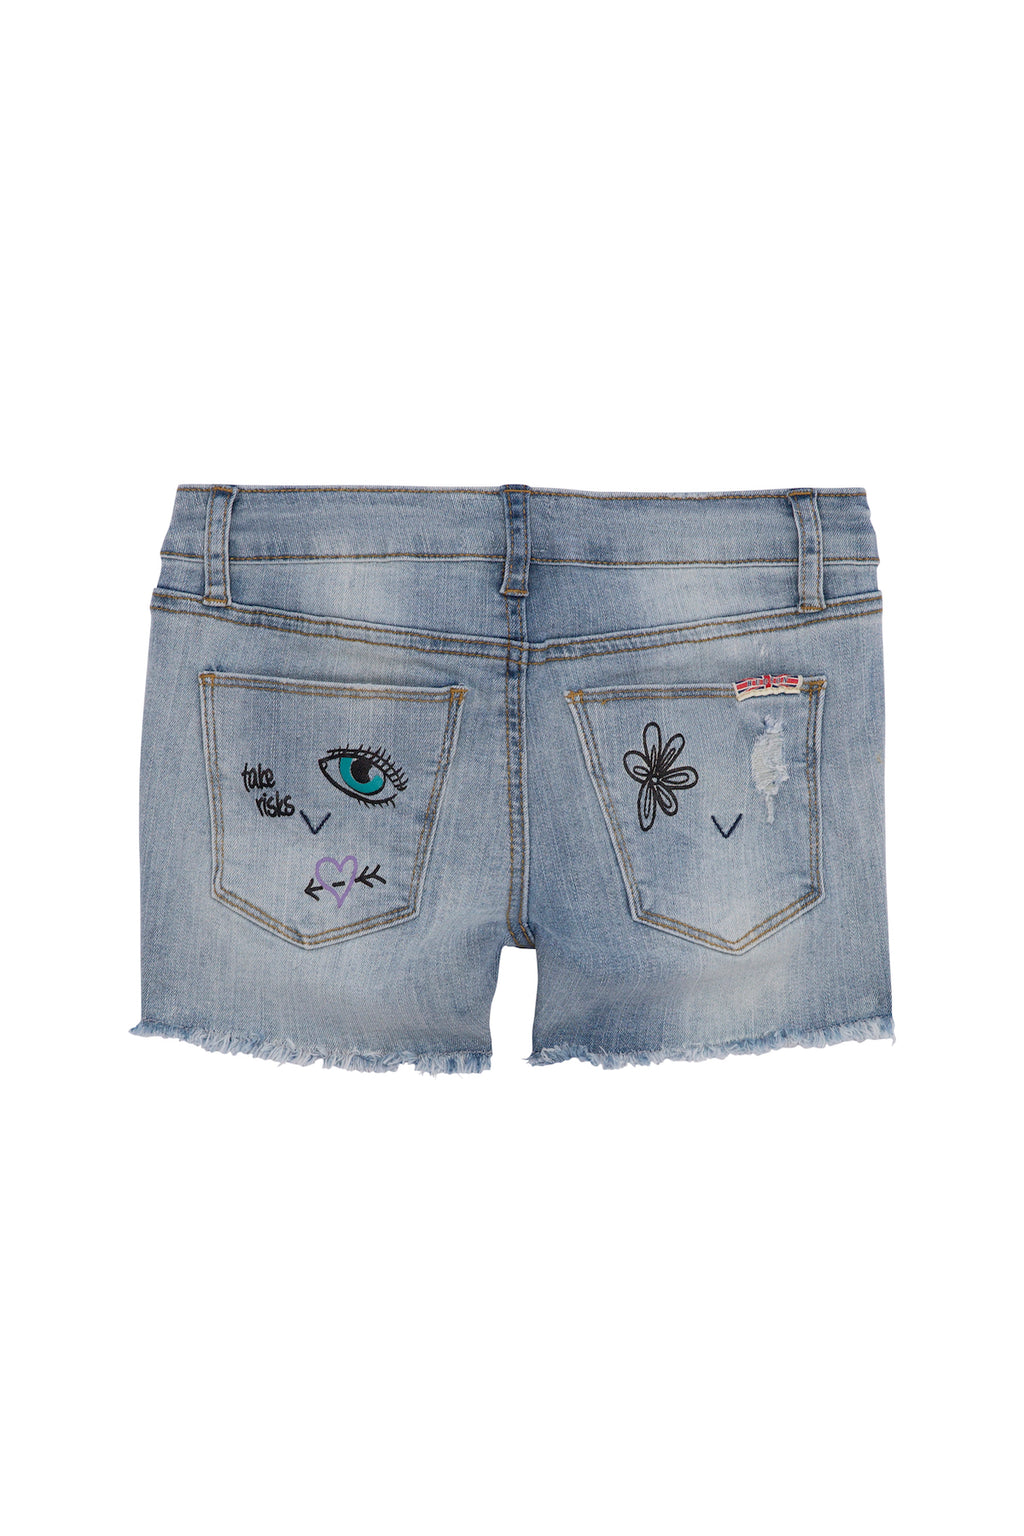 Big Girls Fearless Short, Sizes 7-16 - hudsonjeans